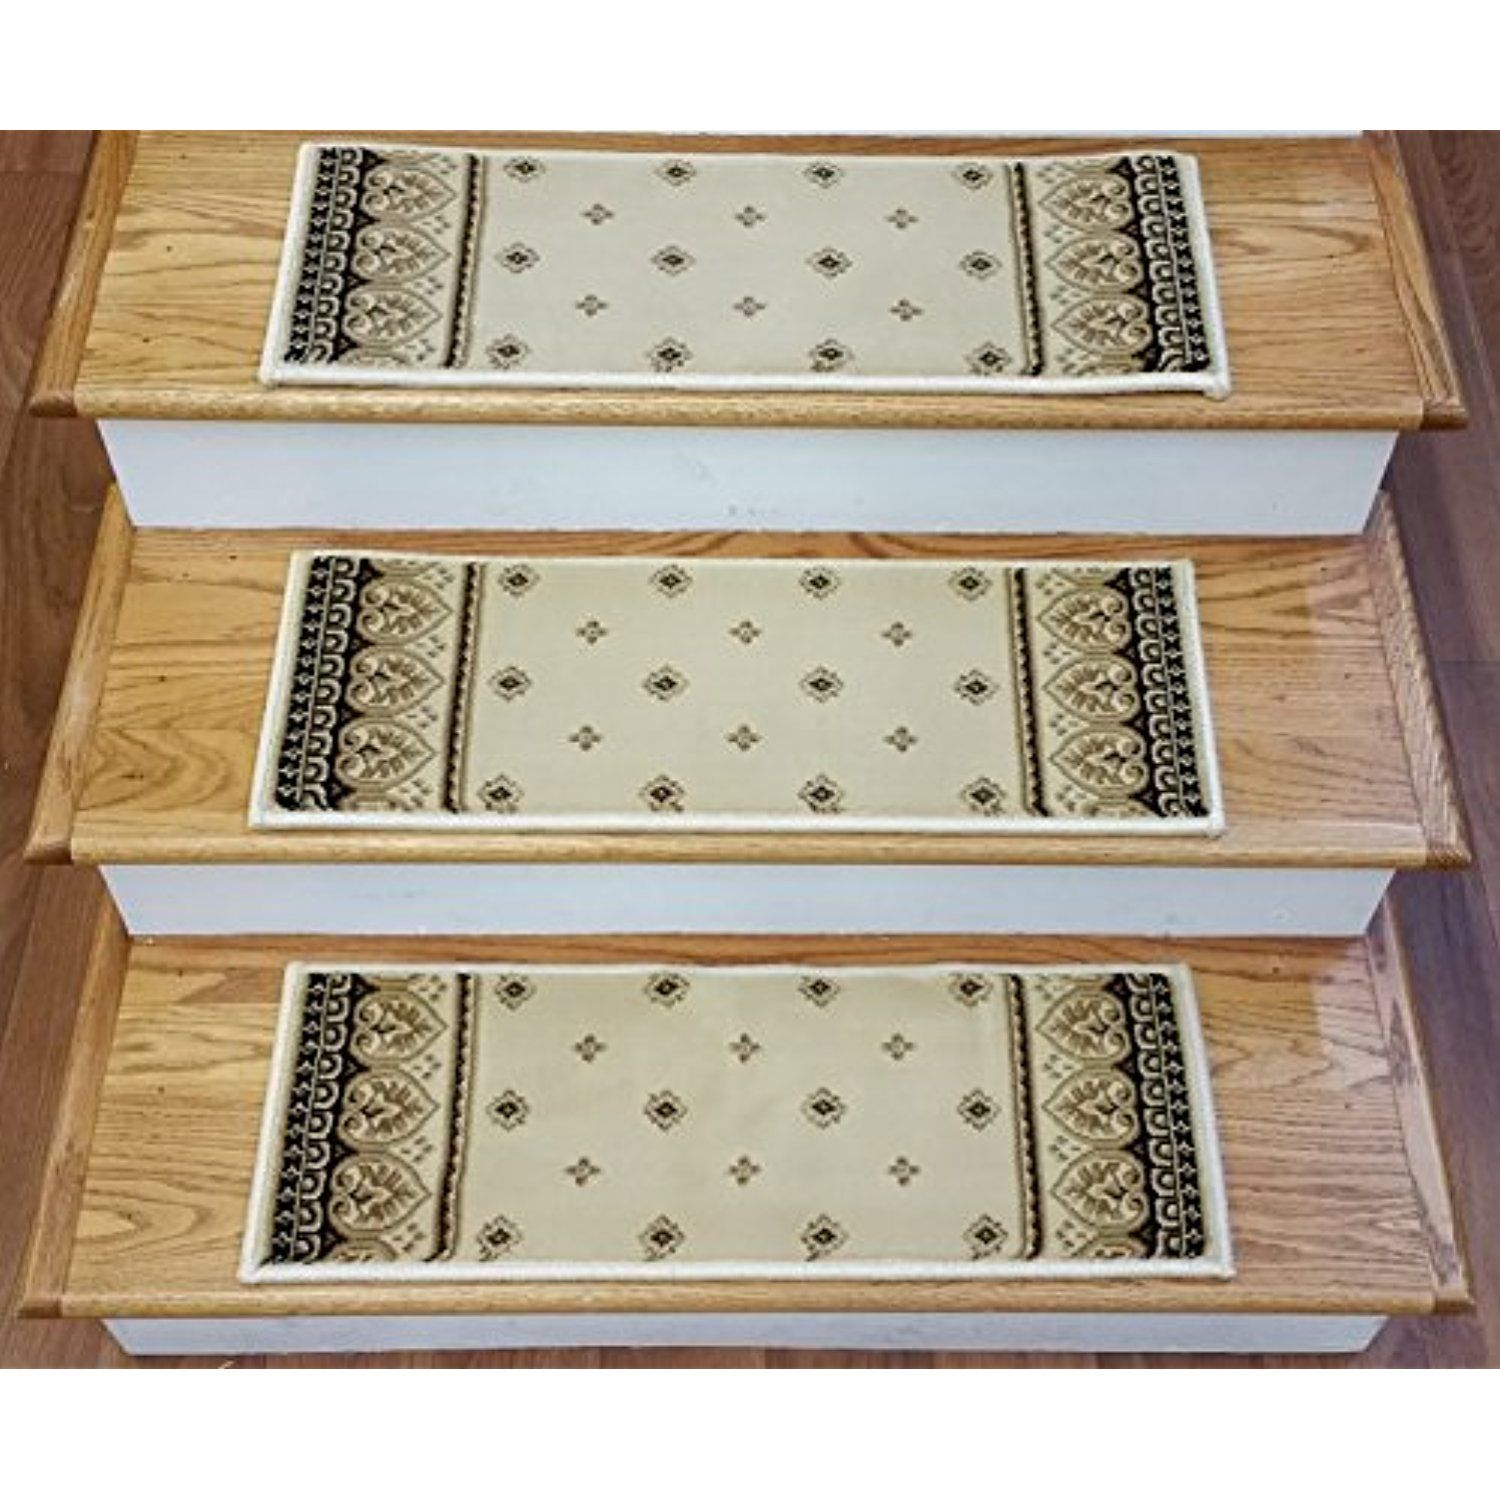 Best 153491 Rug Depot Carpet Stair Treads Set Of 13 Stair 400 x 300